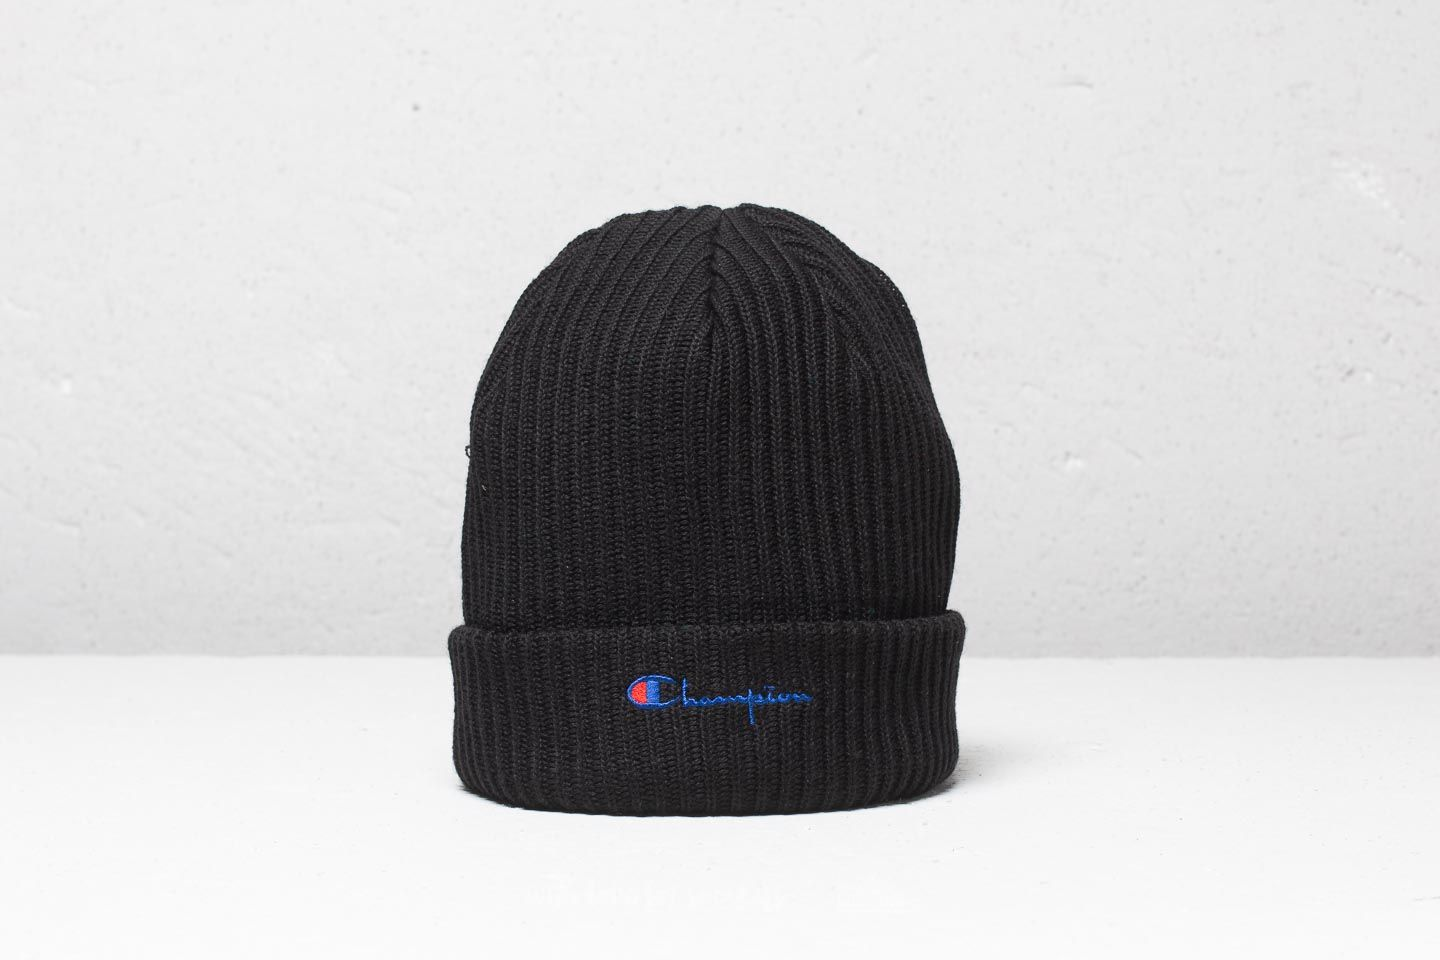 775c8f743c0 CHAMPION Beanie Black